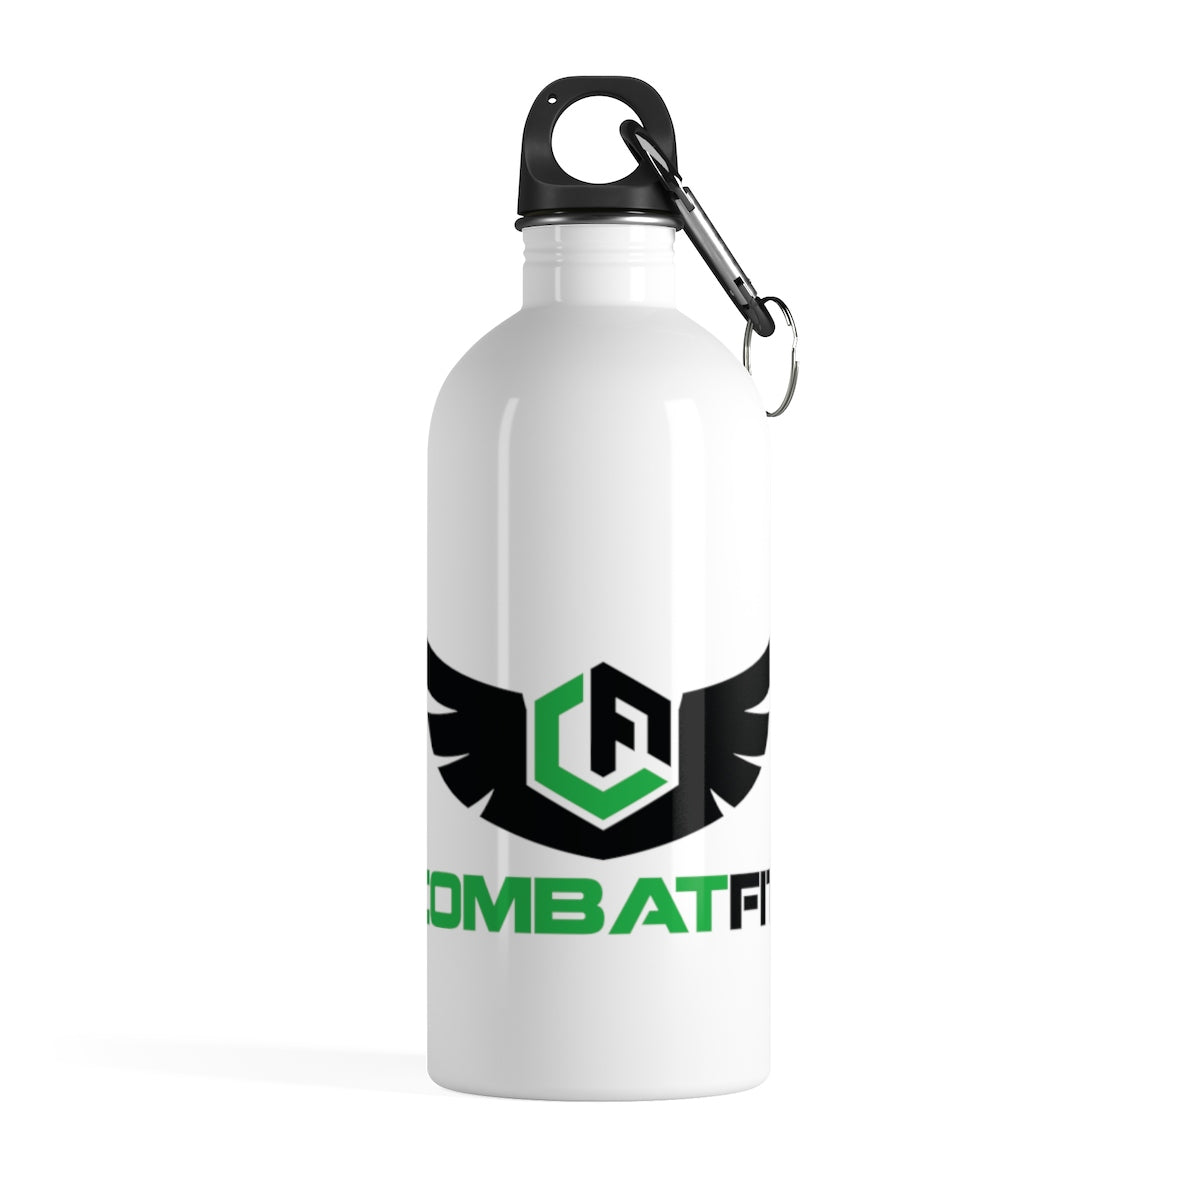 Stainless Steel Water Bottle - Combat Fit